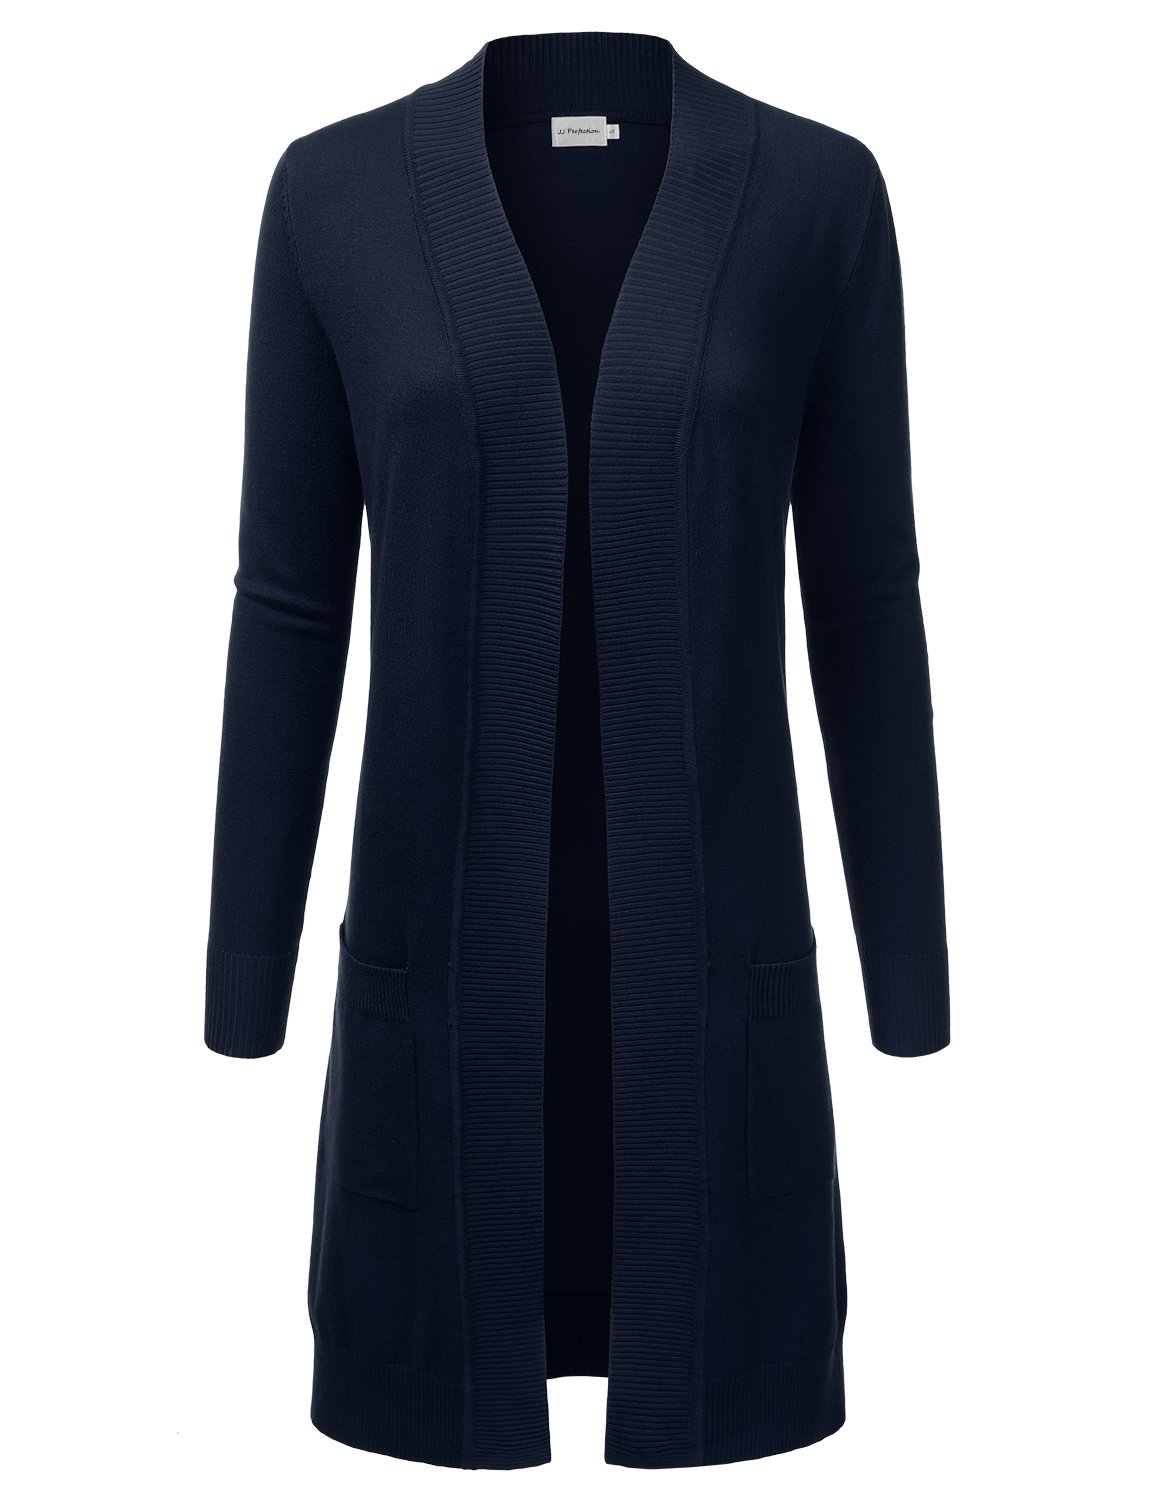 JJ Perfection Womens Light Weight Long Sleeve Open Front Long Cardigan Navy L